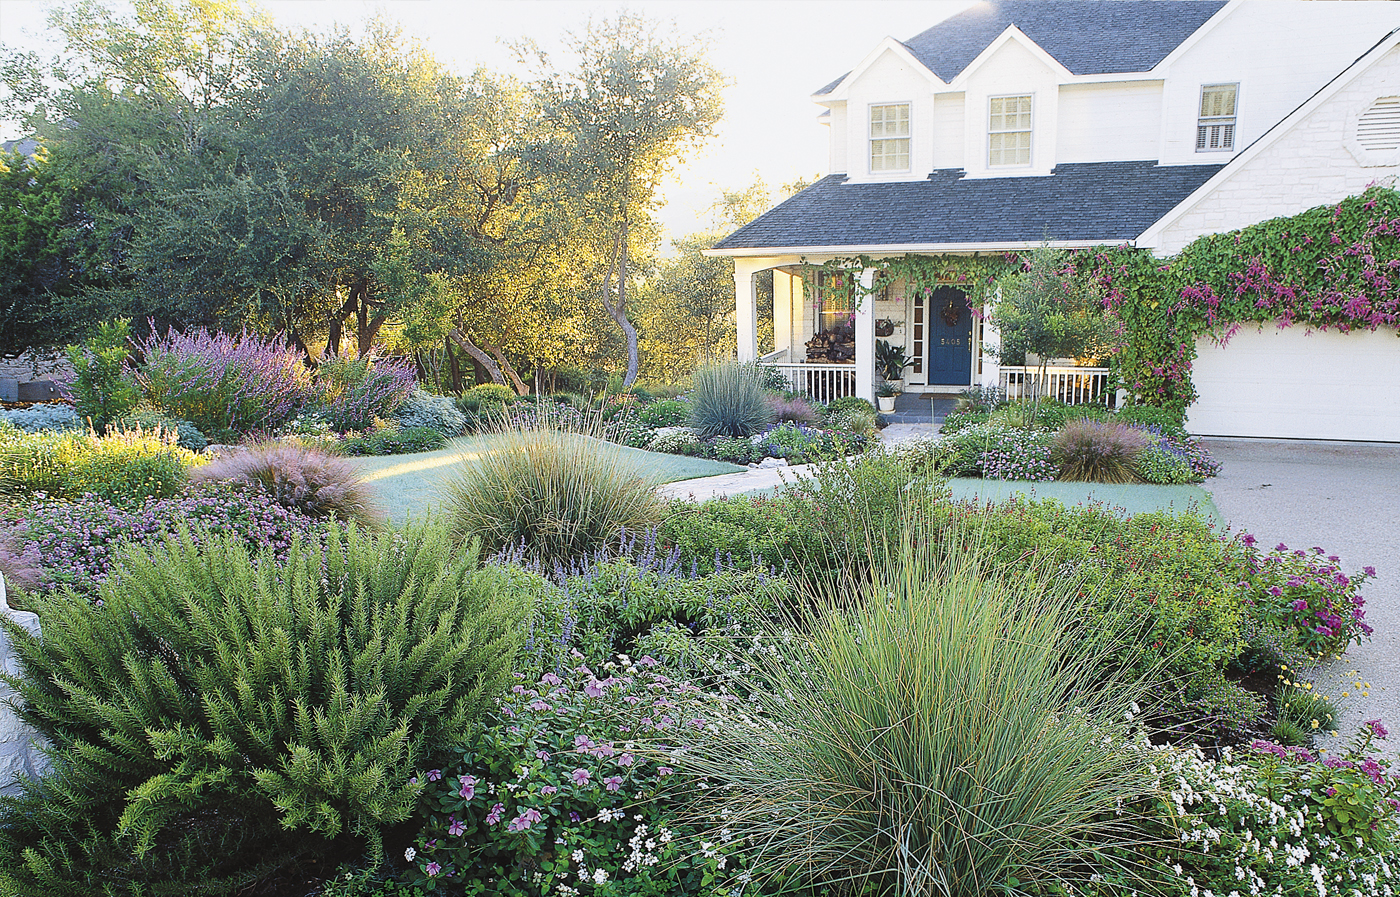 Grassless Front Yard Landscape With Shrubs And Flowers